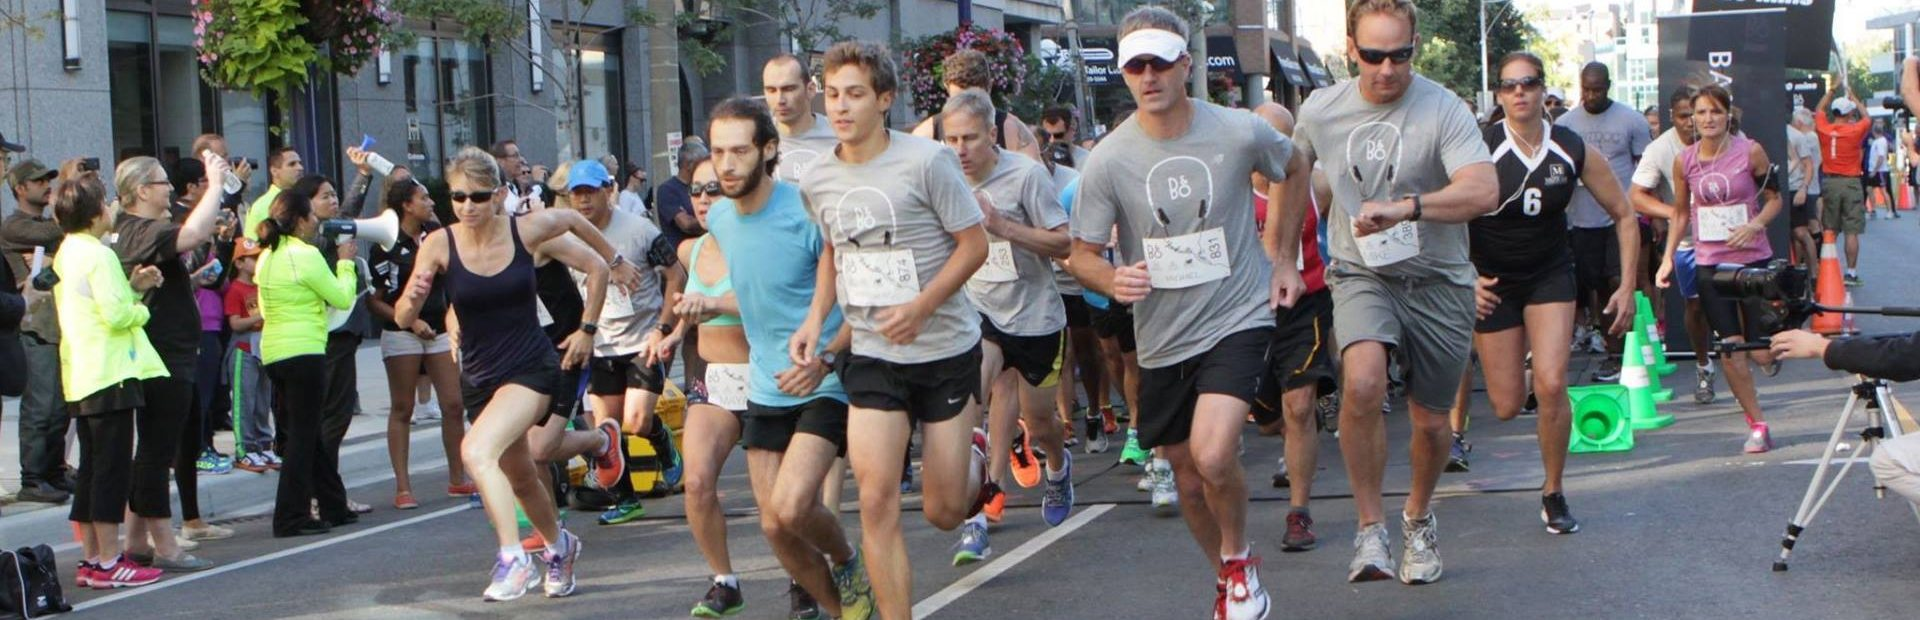 B&O Yorkville Run Returns September 10